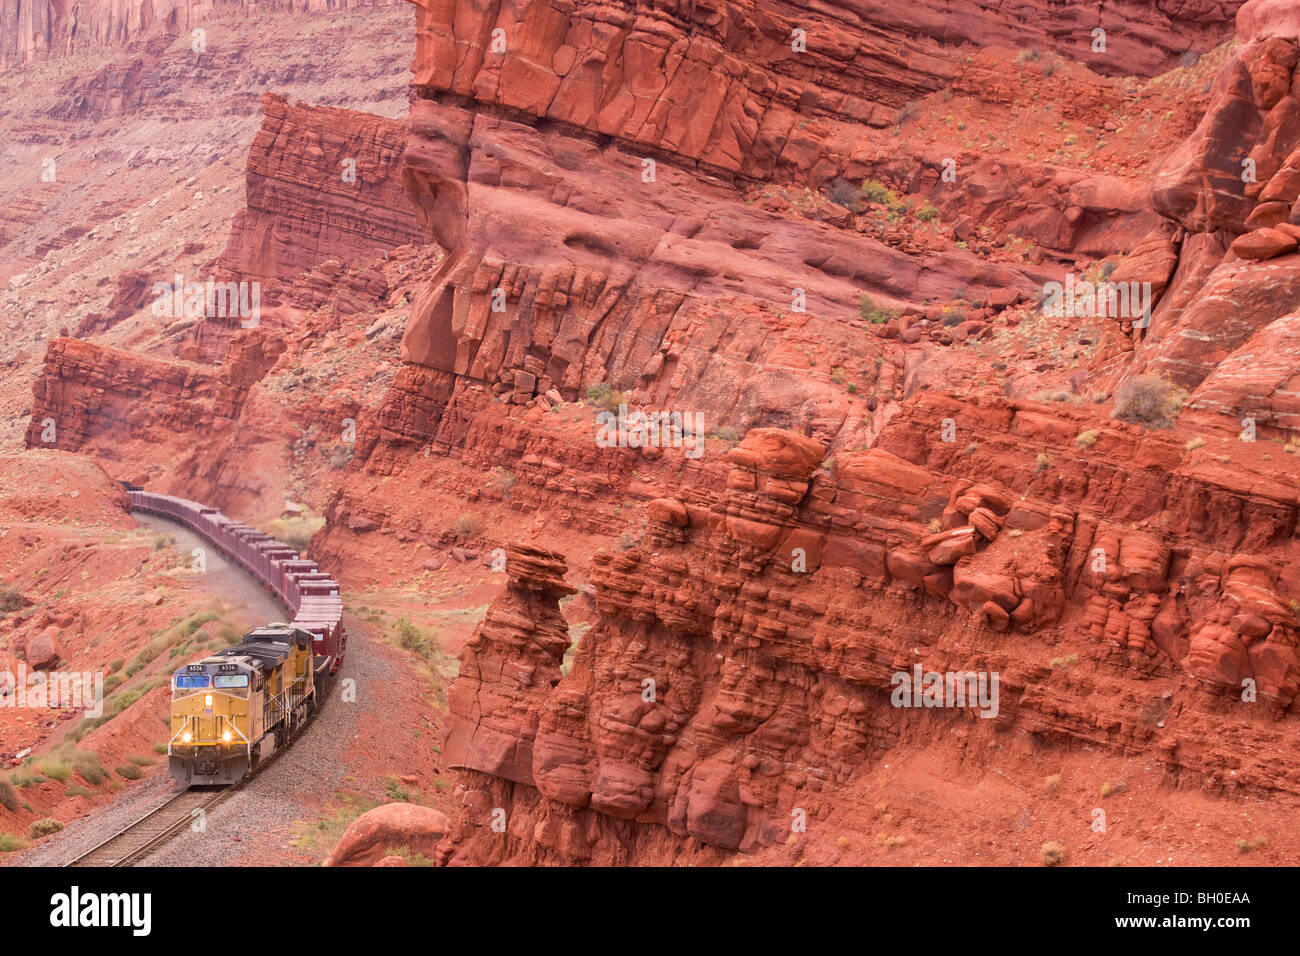 A train hauling uranium tailings as part of the UMTRA project leaves Moab, Utah. - Stock Image